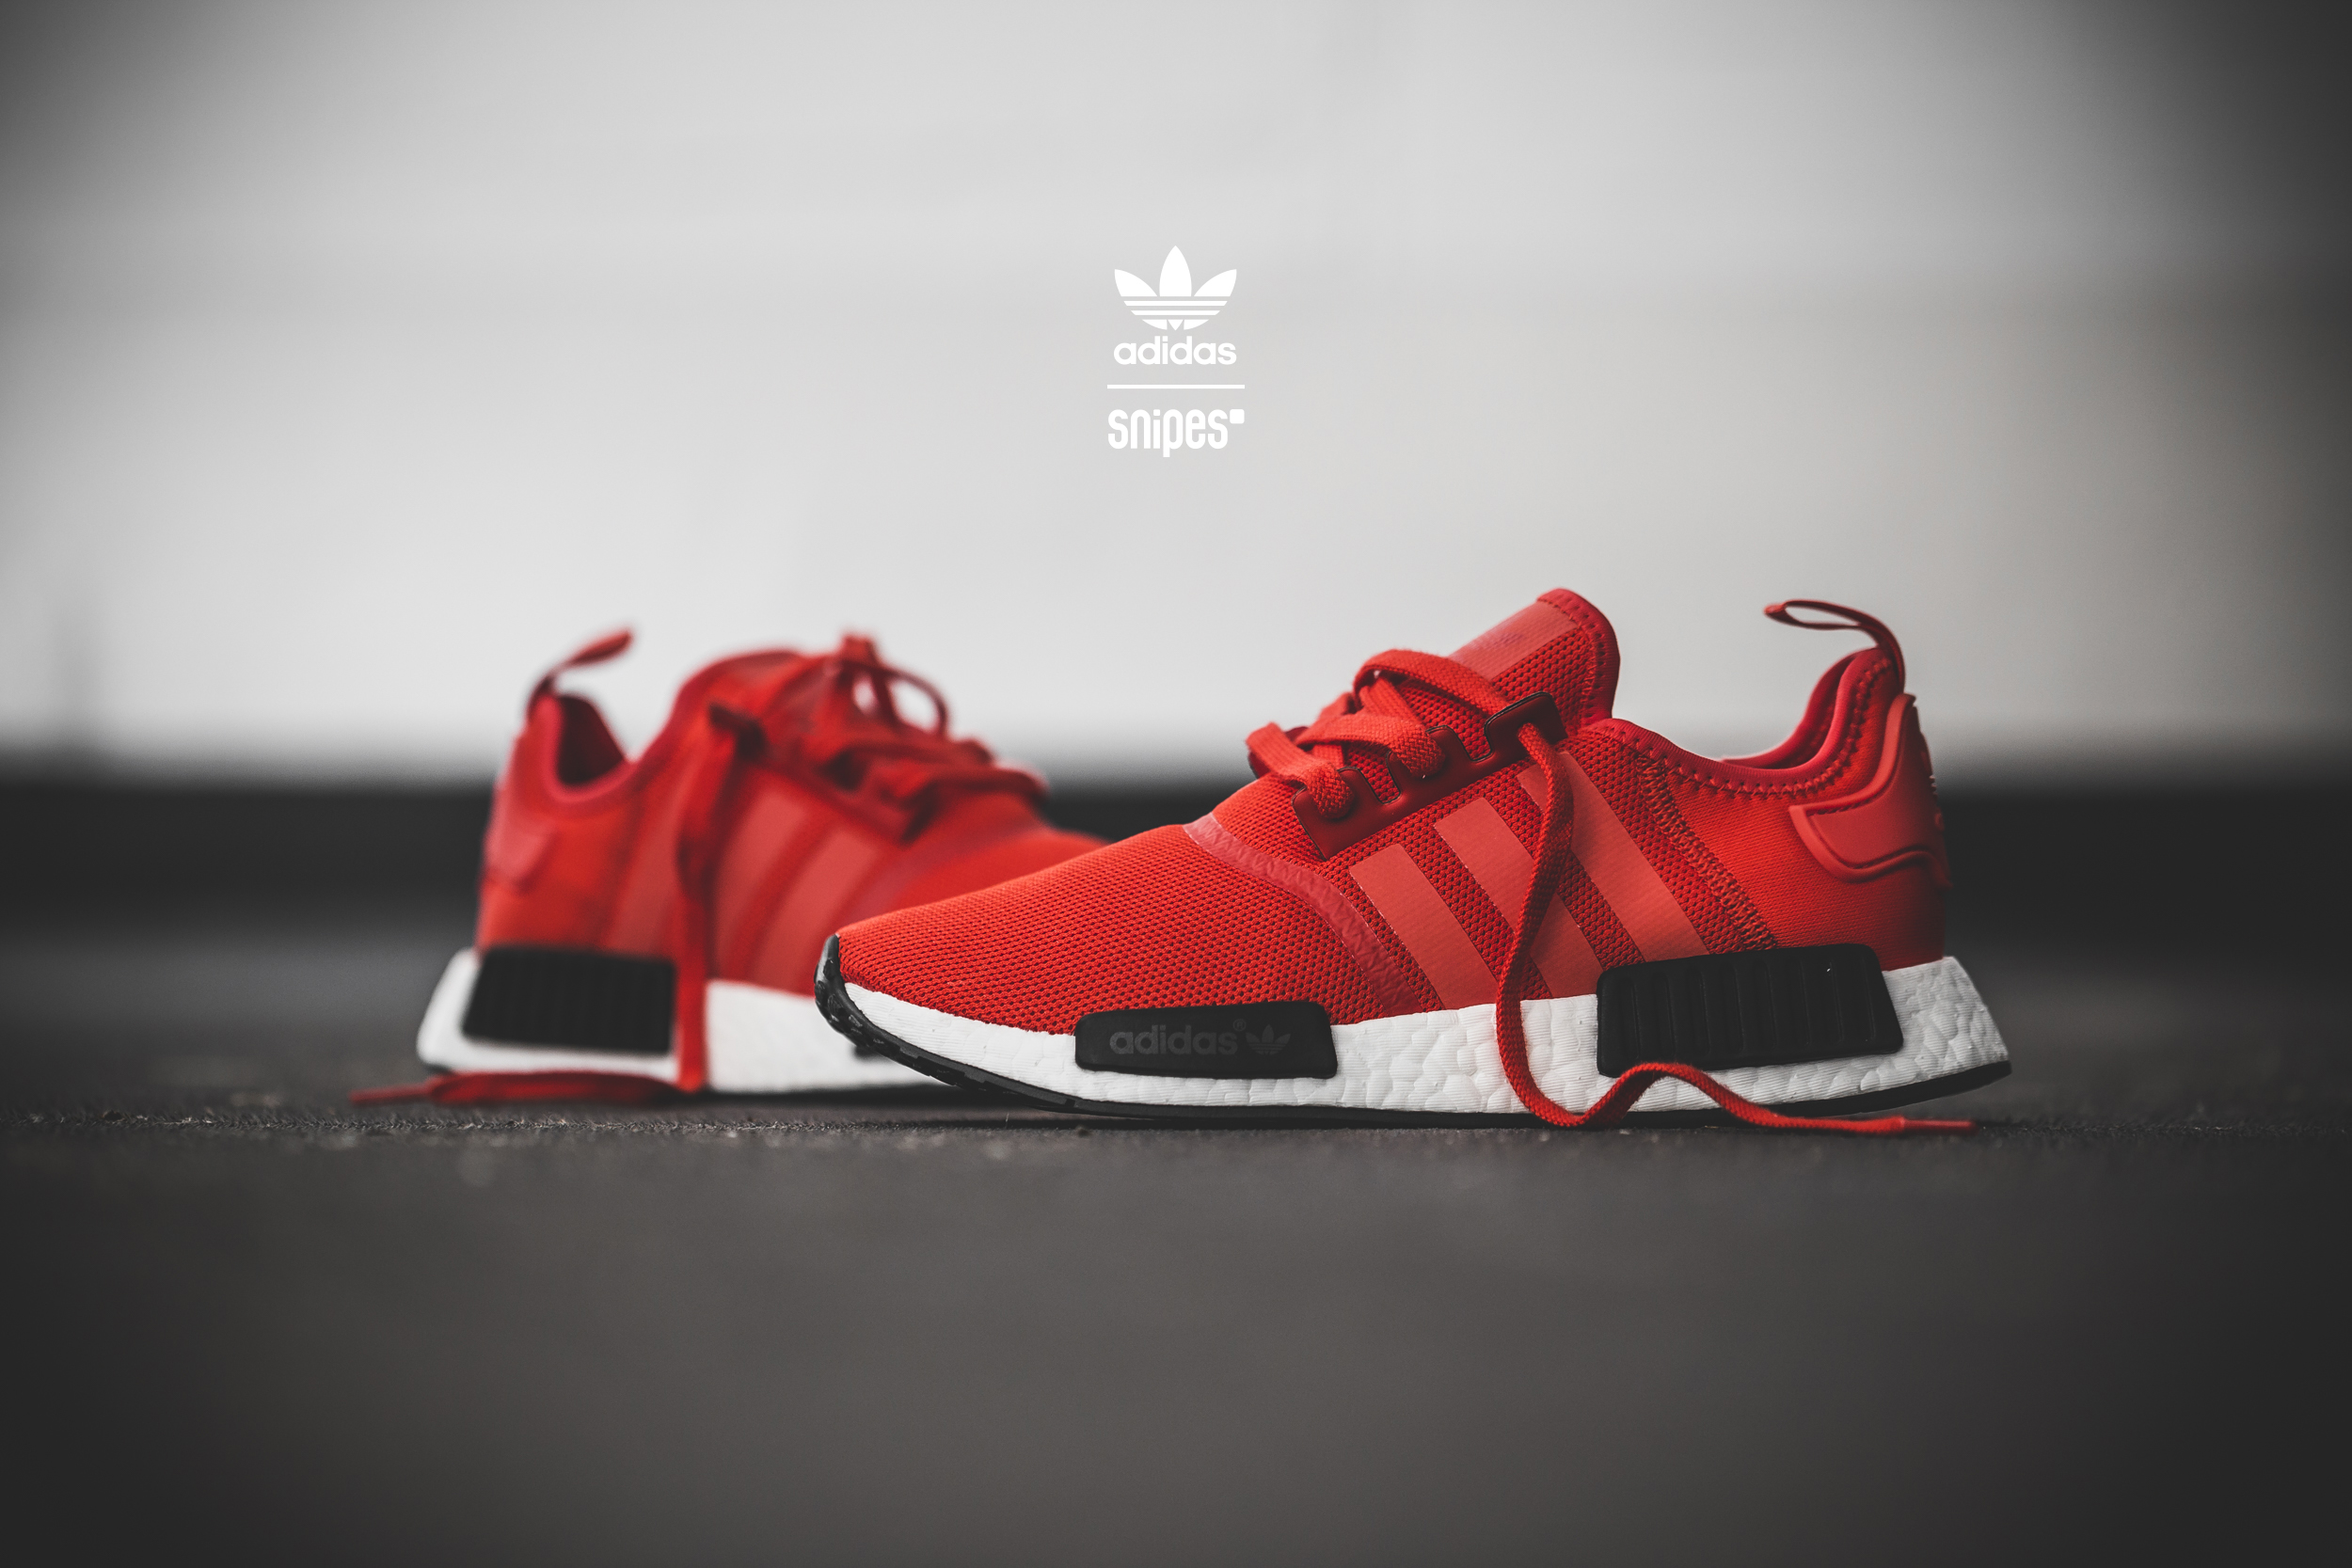 adidas_NMD_Runner_red-red-white_1013885-3